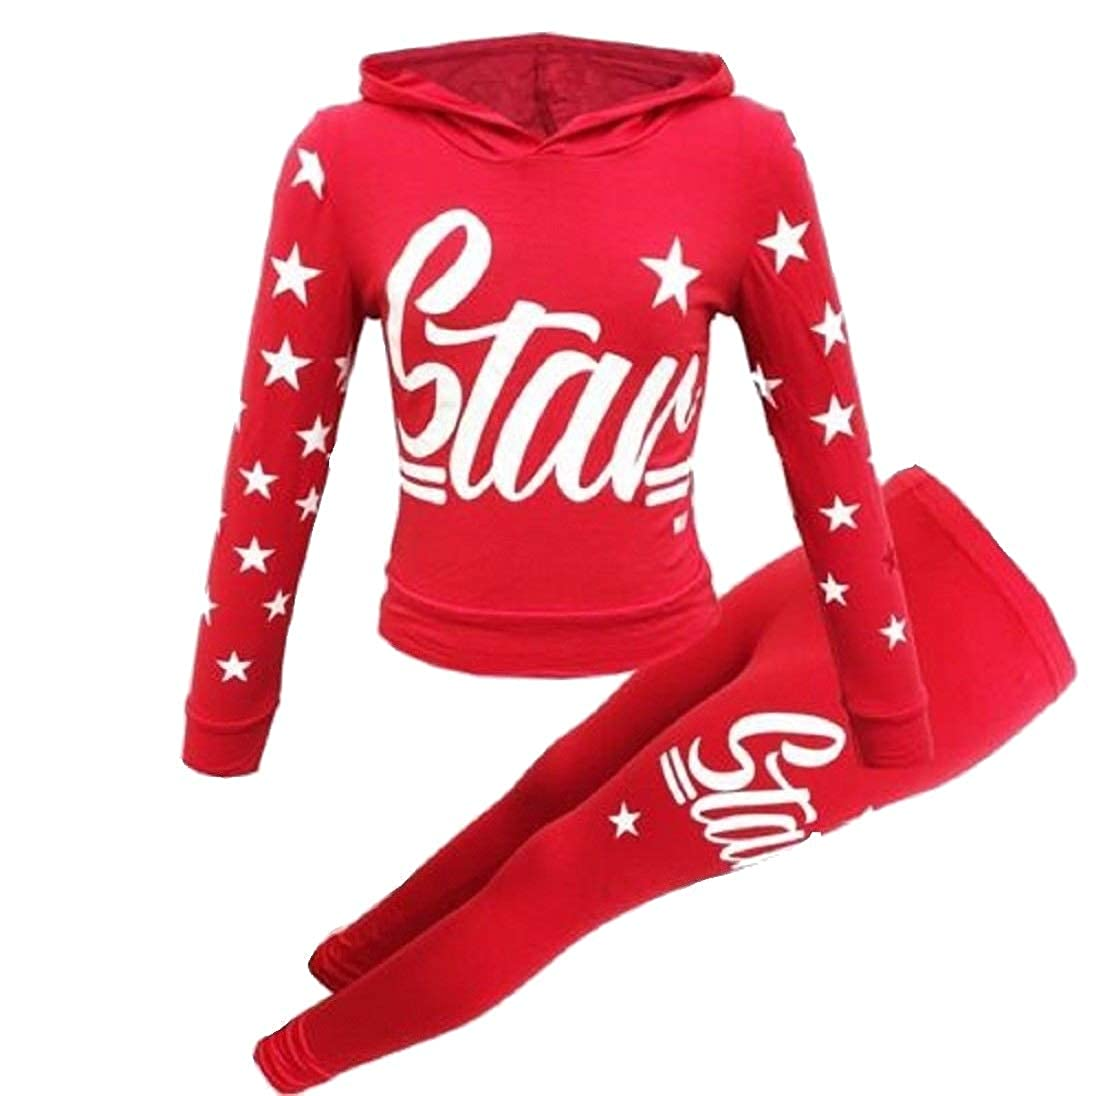 Girls Kids Star Print Hooded Tracksuit Top & Bottom Loung_wear Jogging Set Outfit Age 7-13 Years